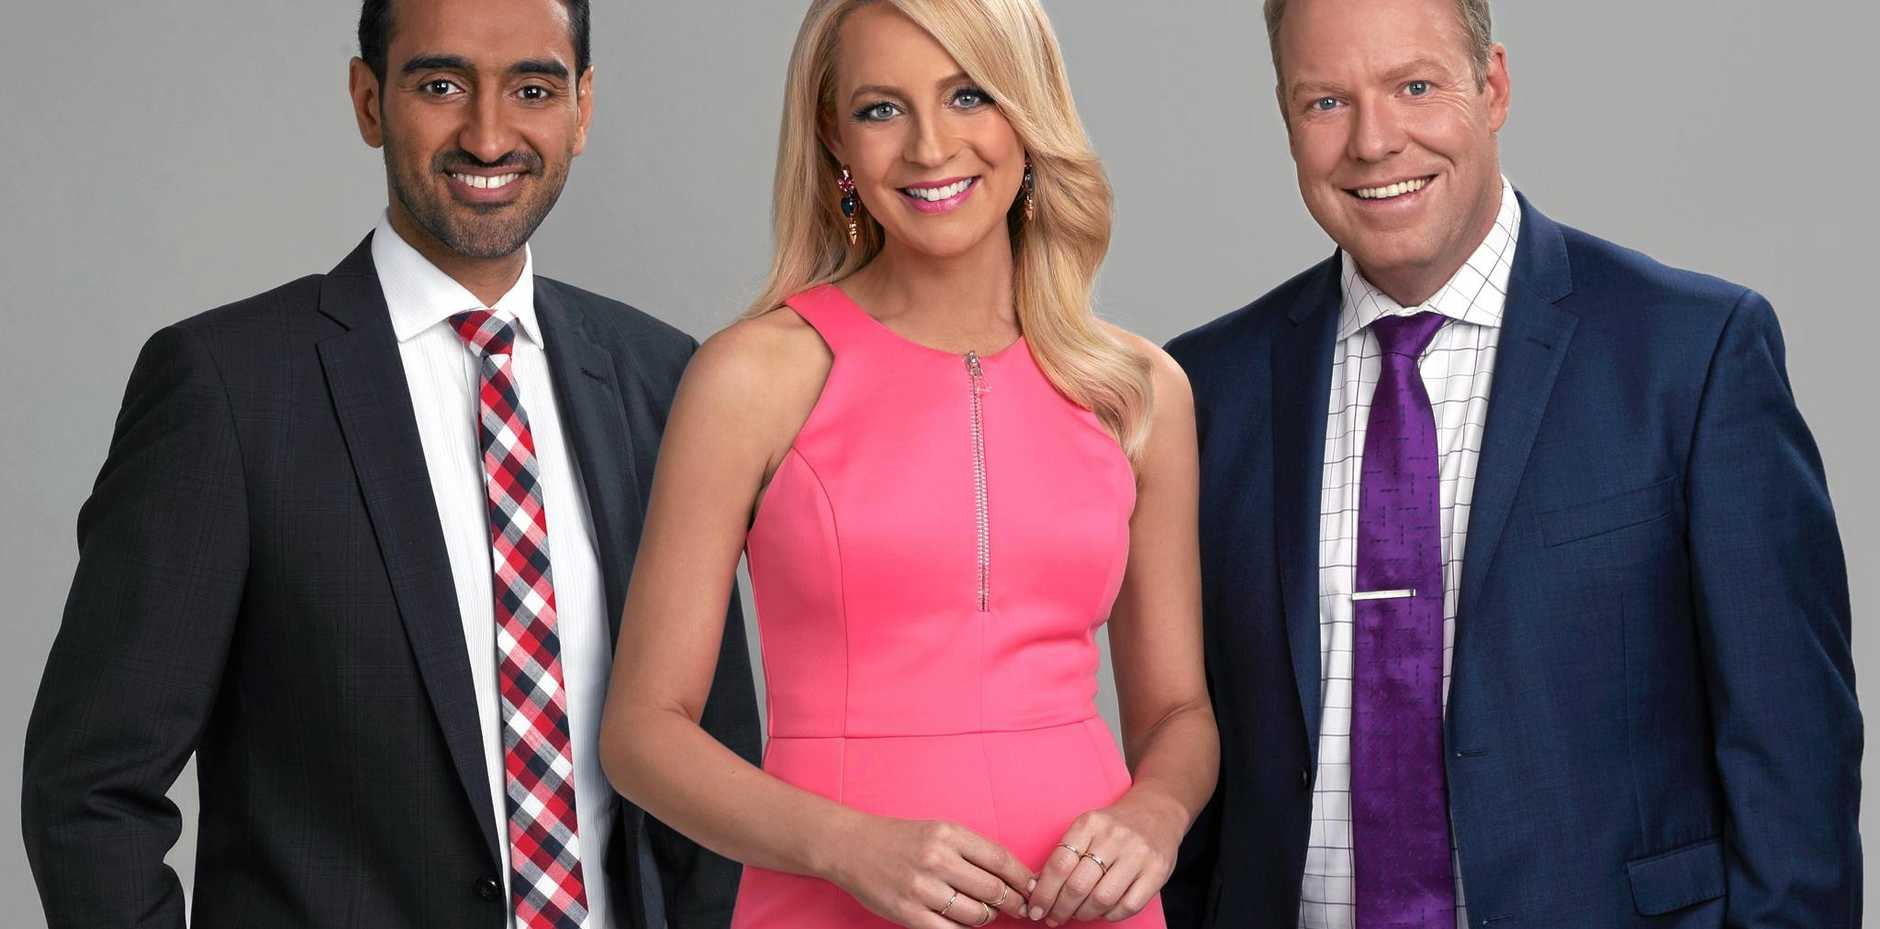 Waleed Aly, left, joins The Project full time in 2015. Pictured with Carrie Bickmore and Peter Helliar. Supplied by Network Ten.